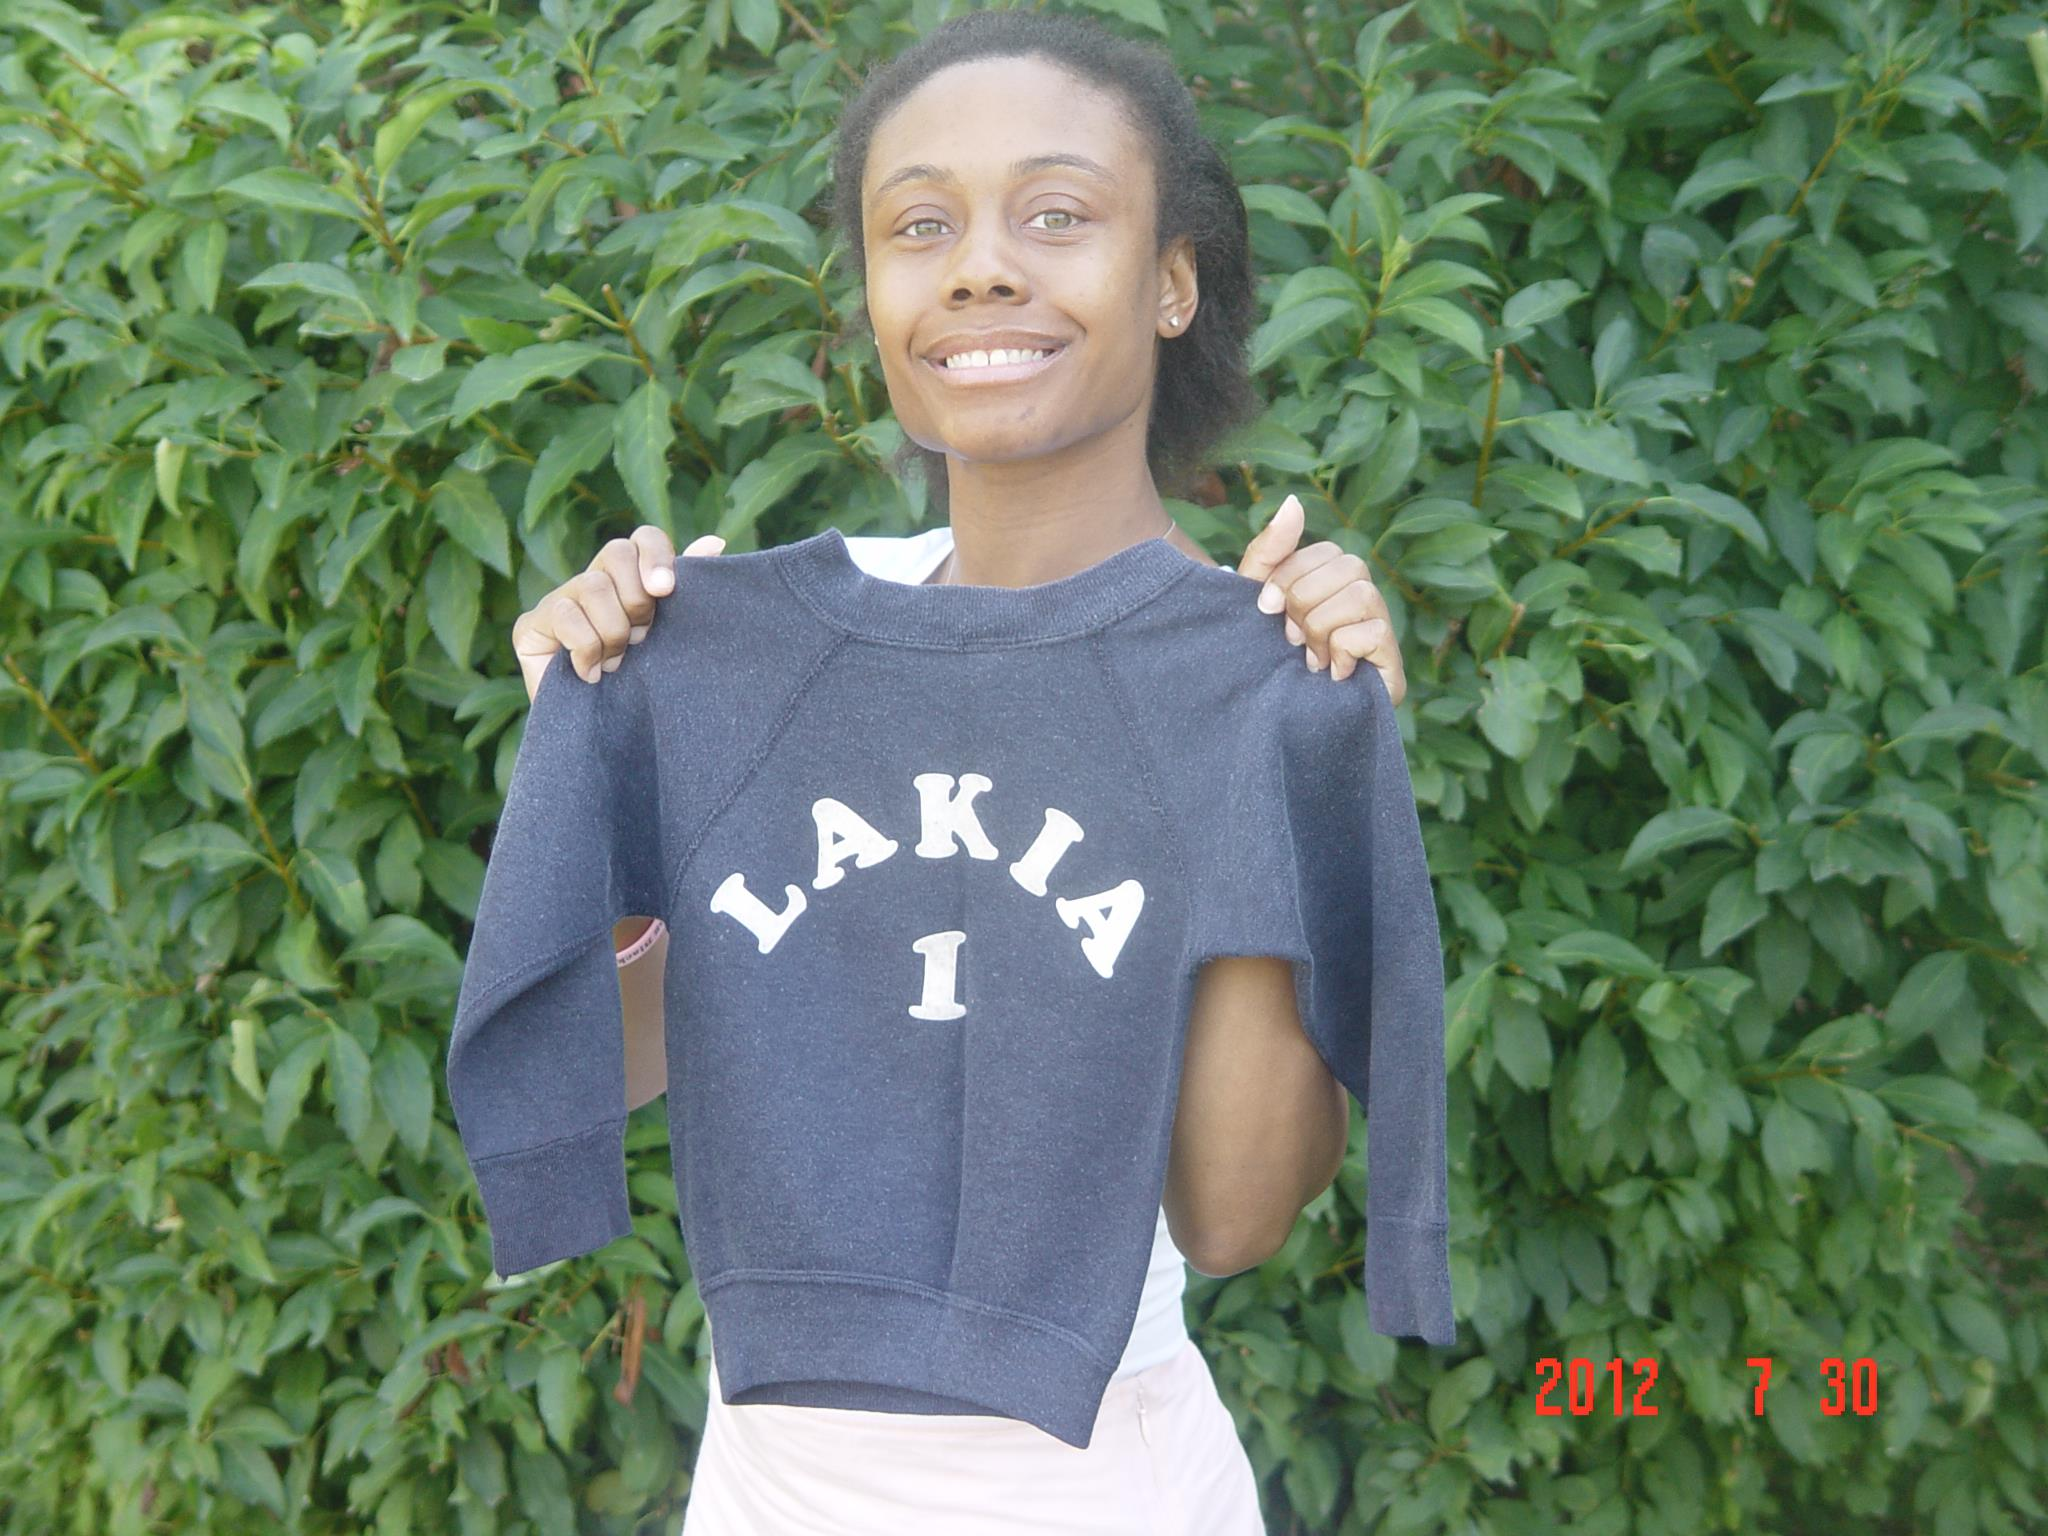 FEATURED MULTIRACIAL INDIVIDUAL: MEET LAKIA LIGHTNER via Swirl Nation Blog